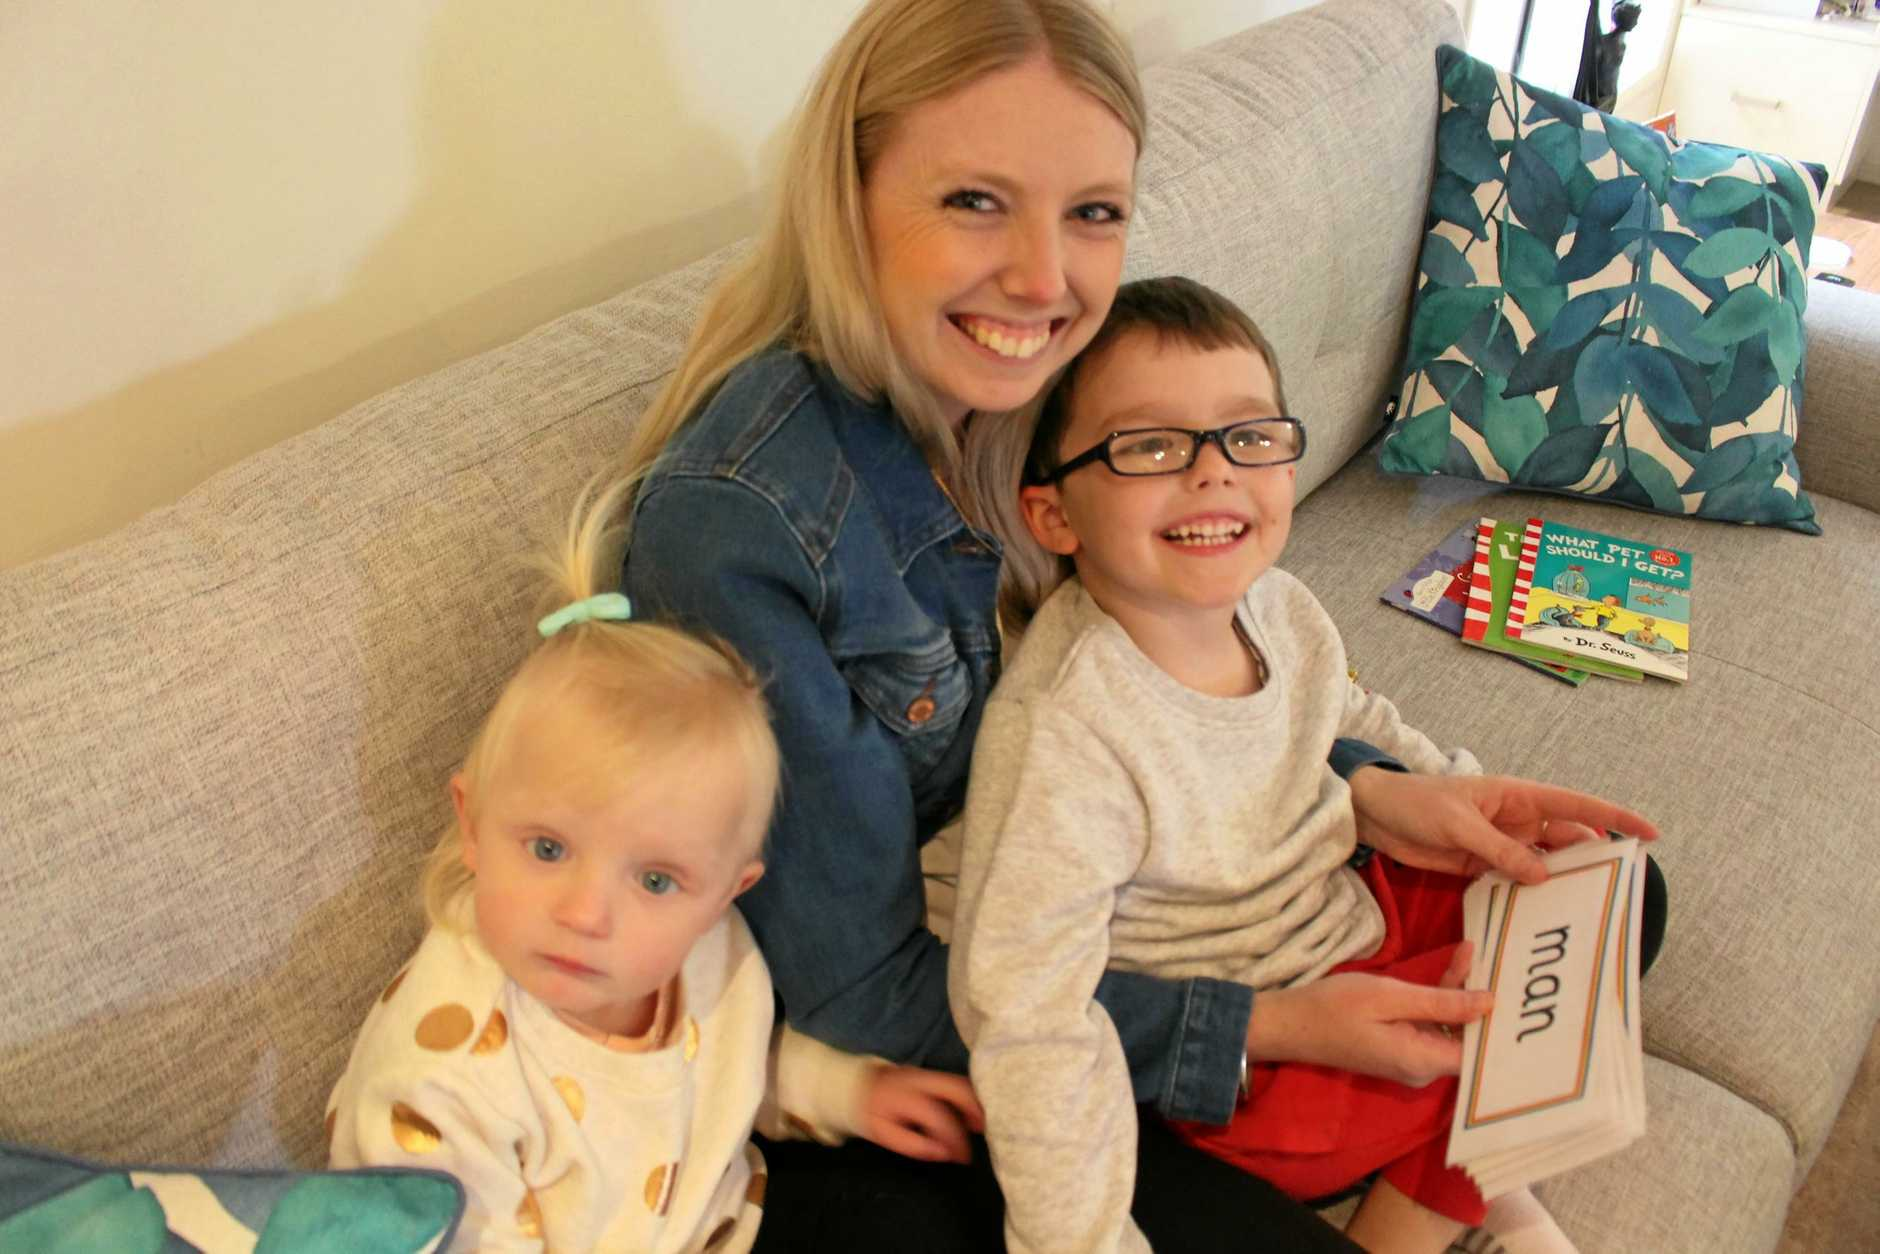 Felix (5) and Heidi (2) Lubben enjoy reading on the couch with their mother Holly Lubben. Books, kids, reading, literacy, Warwick, family, parenting, mother, literacy, early childhood, kindergarten